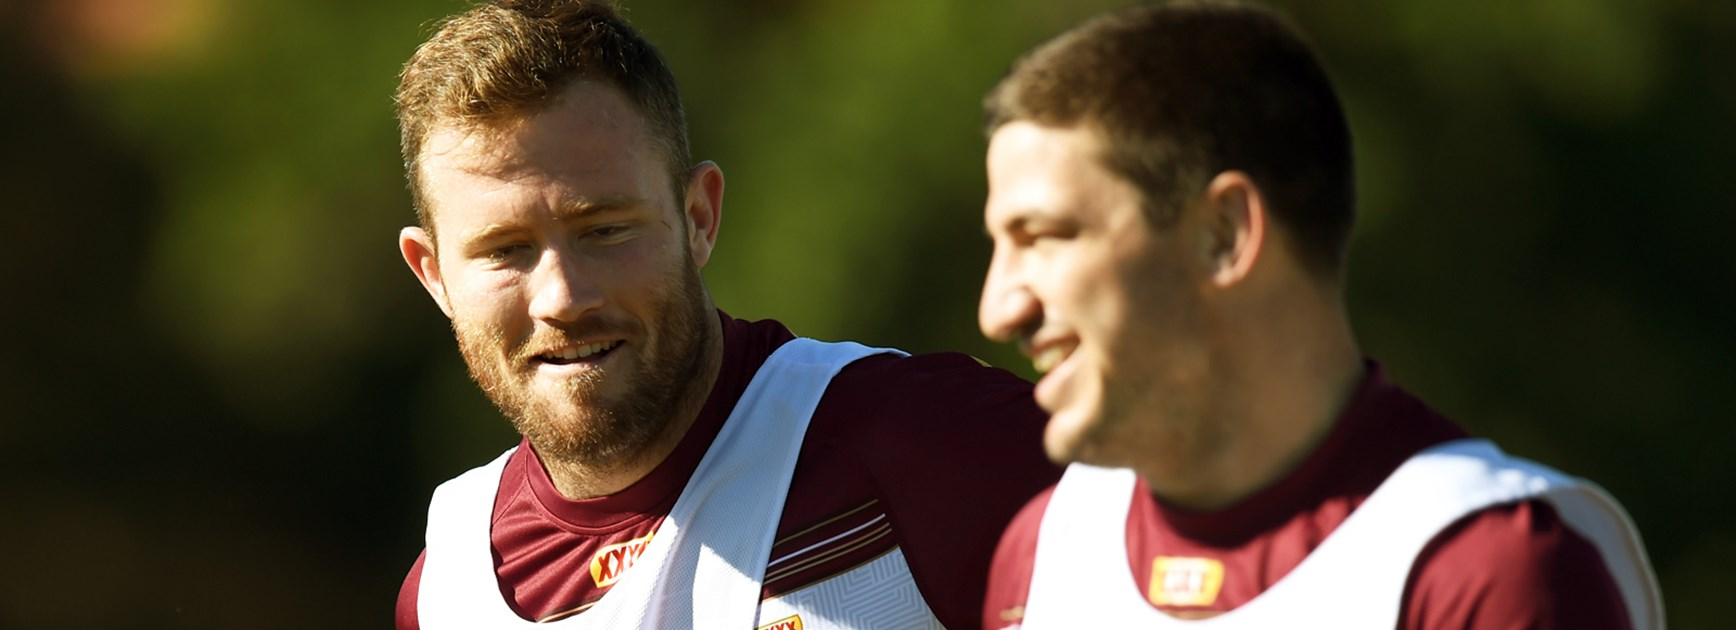 Maroons teammates Gavin Cooper and Matt Gillett will be direct opponents in Friday night's semi-final in Townsville.